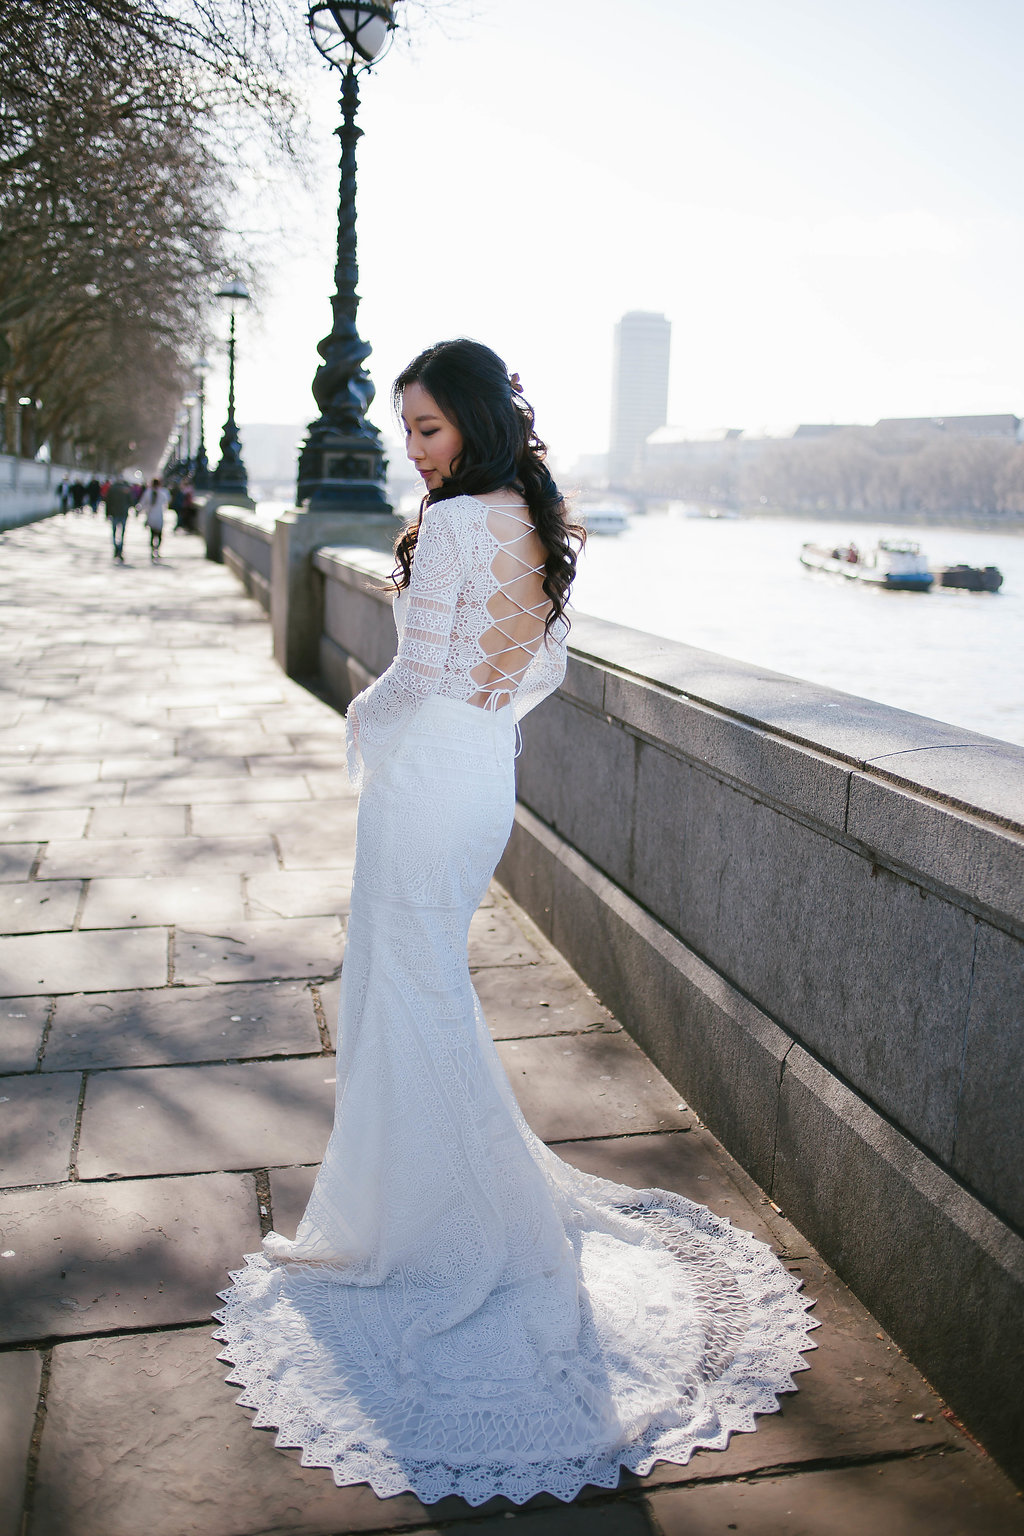 Nina Pang Photography - City Bride - London wedding - City wedding - Chinese wedding 30